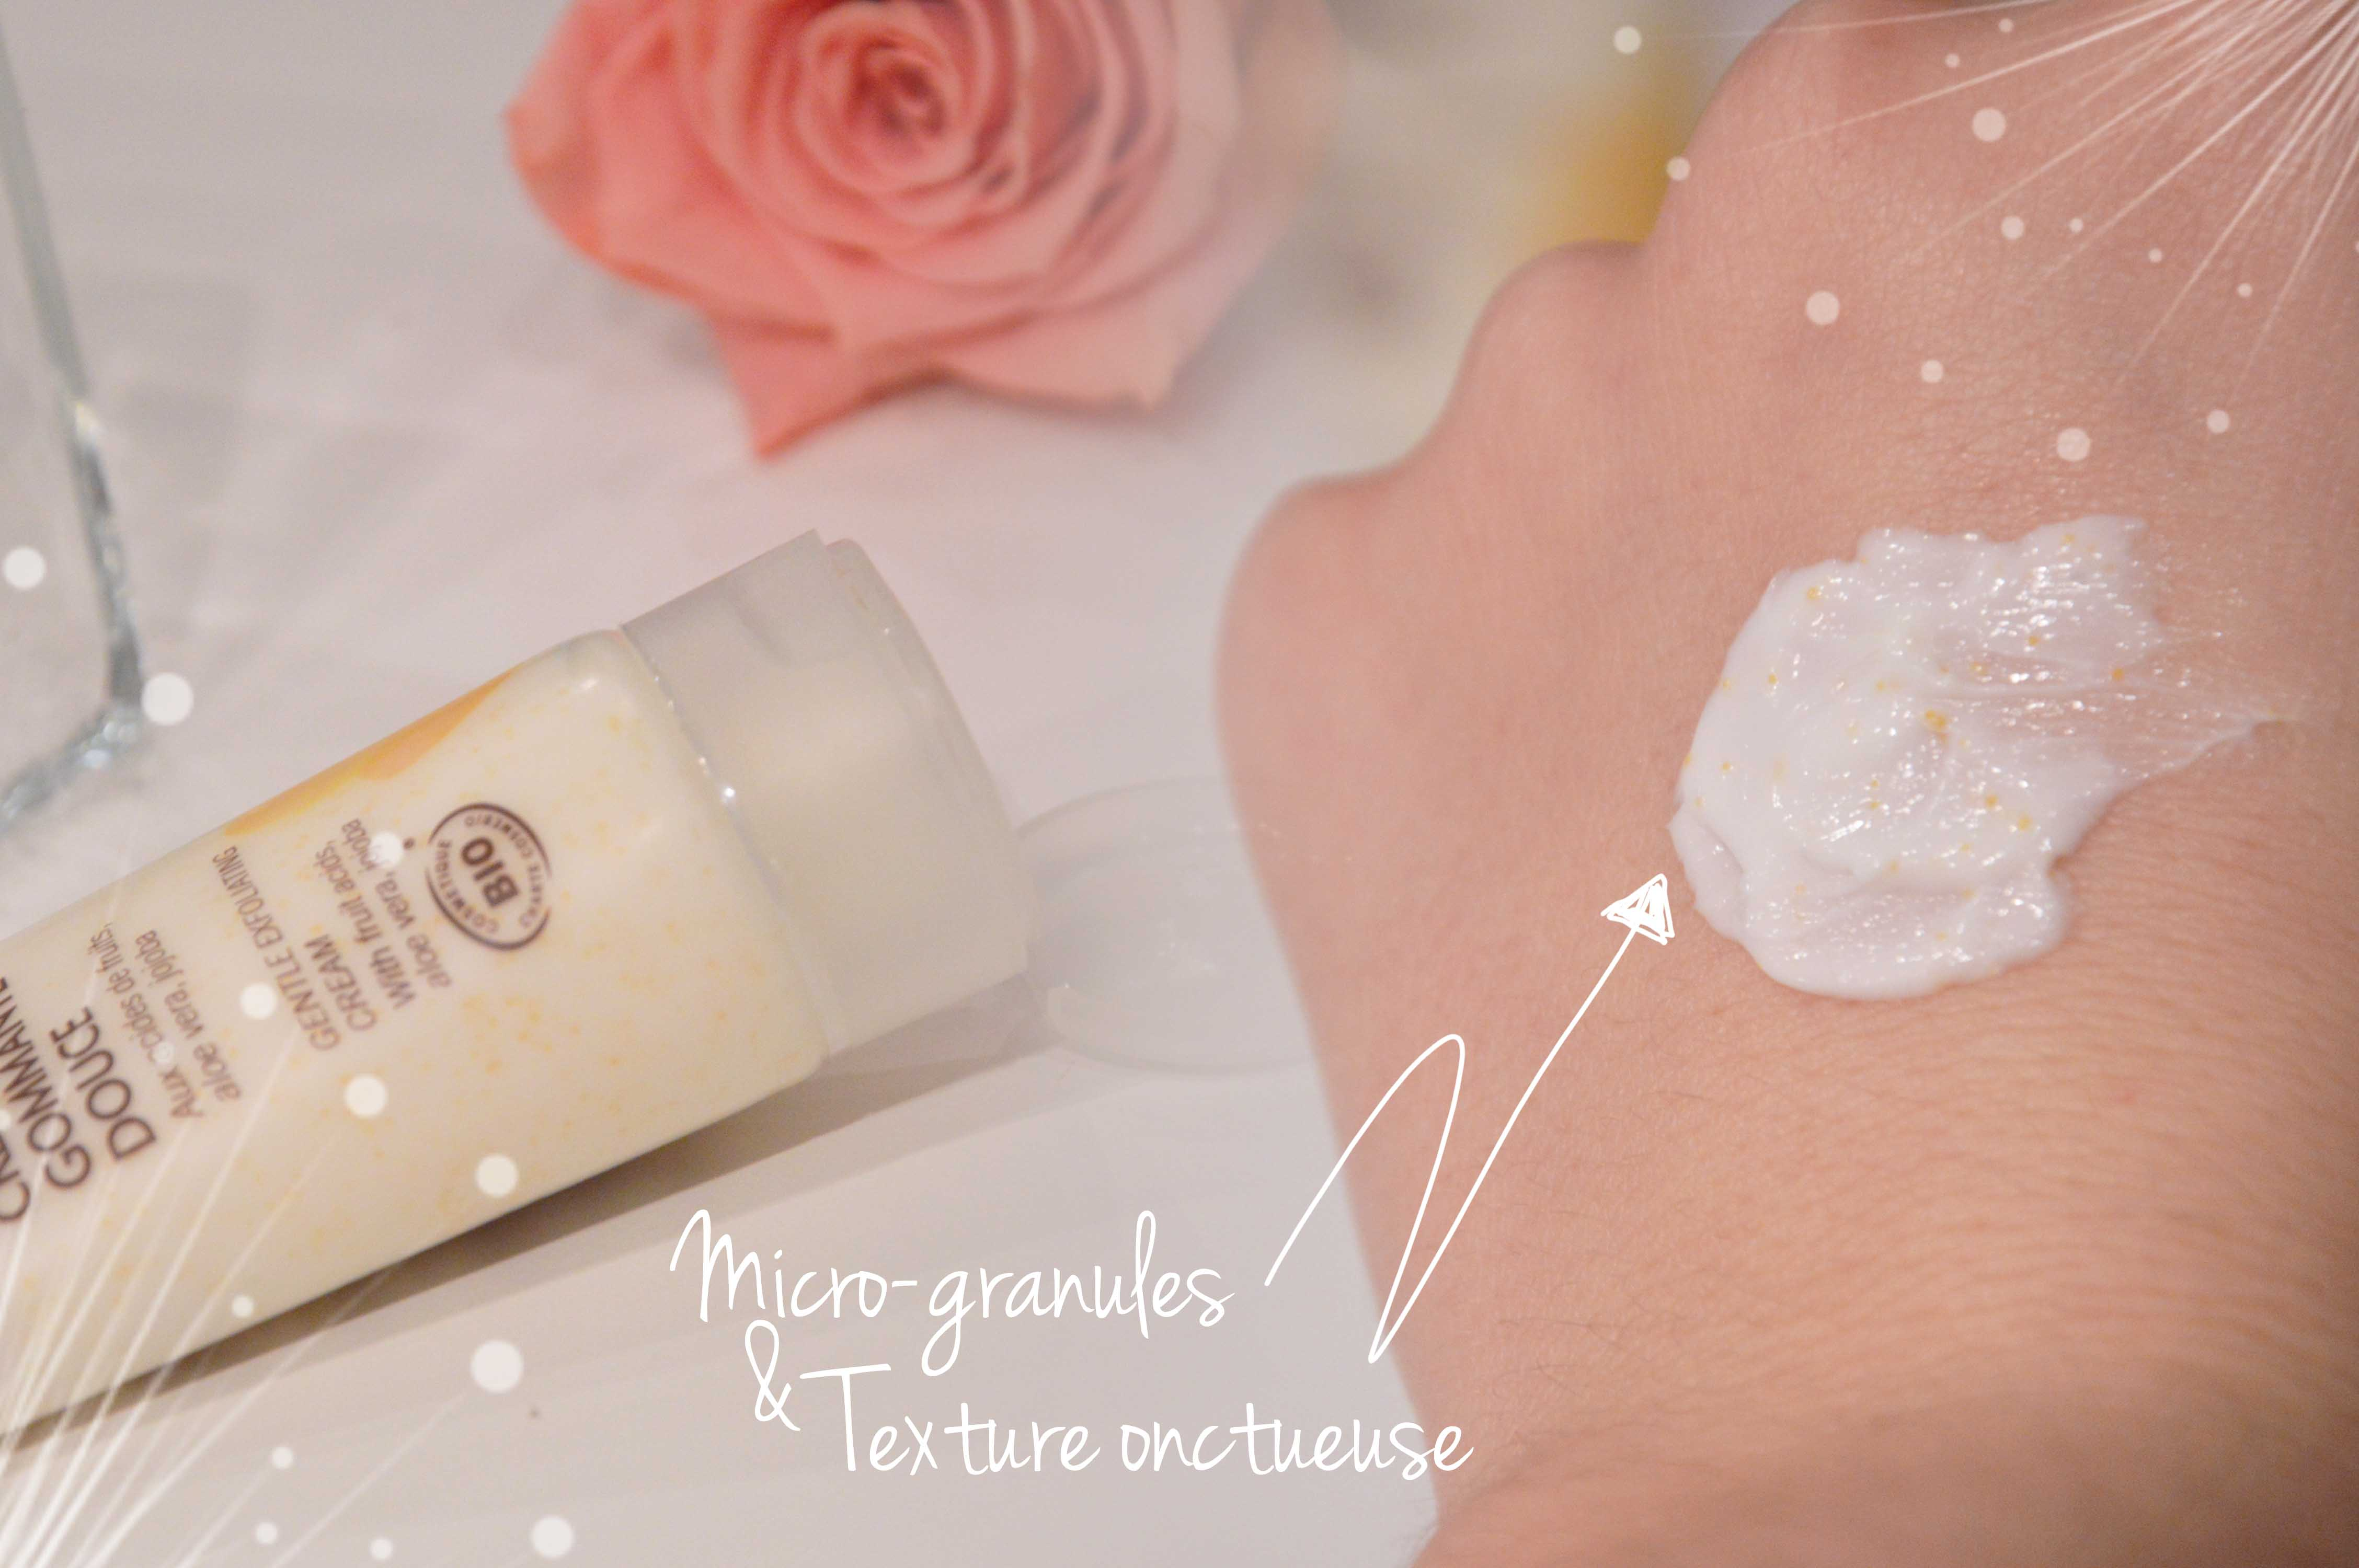 ALITTLEB_BLOG_BEAUTE_SOIN_COCOONING_FLEURANCE_NATURE_CREME_GOMMAGE_DOUCE-SWATCH